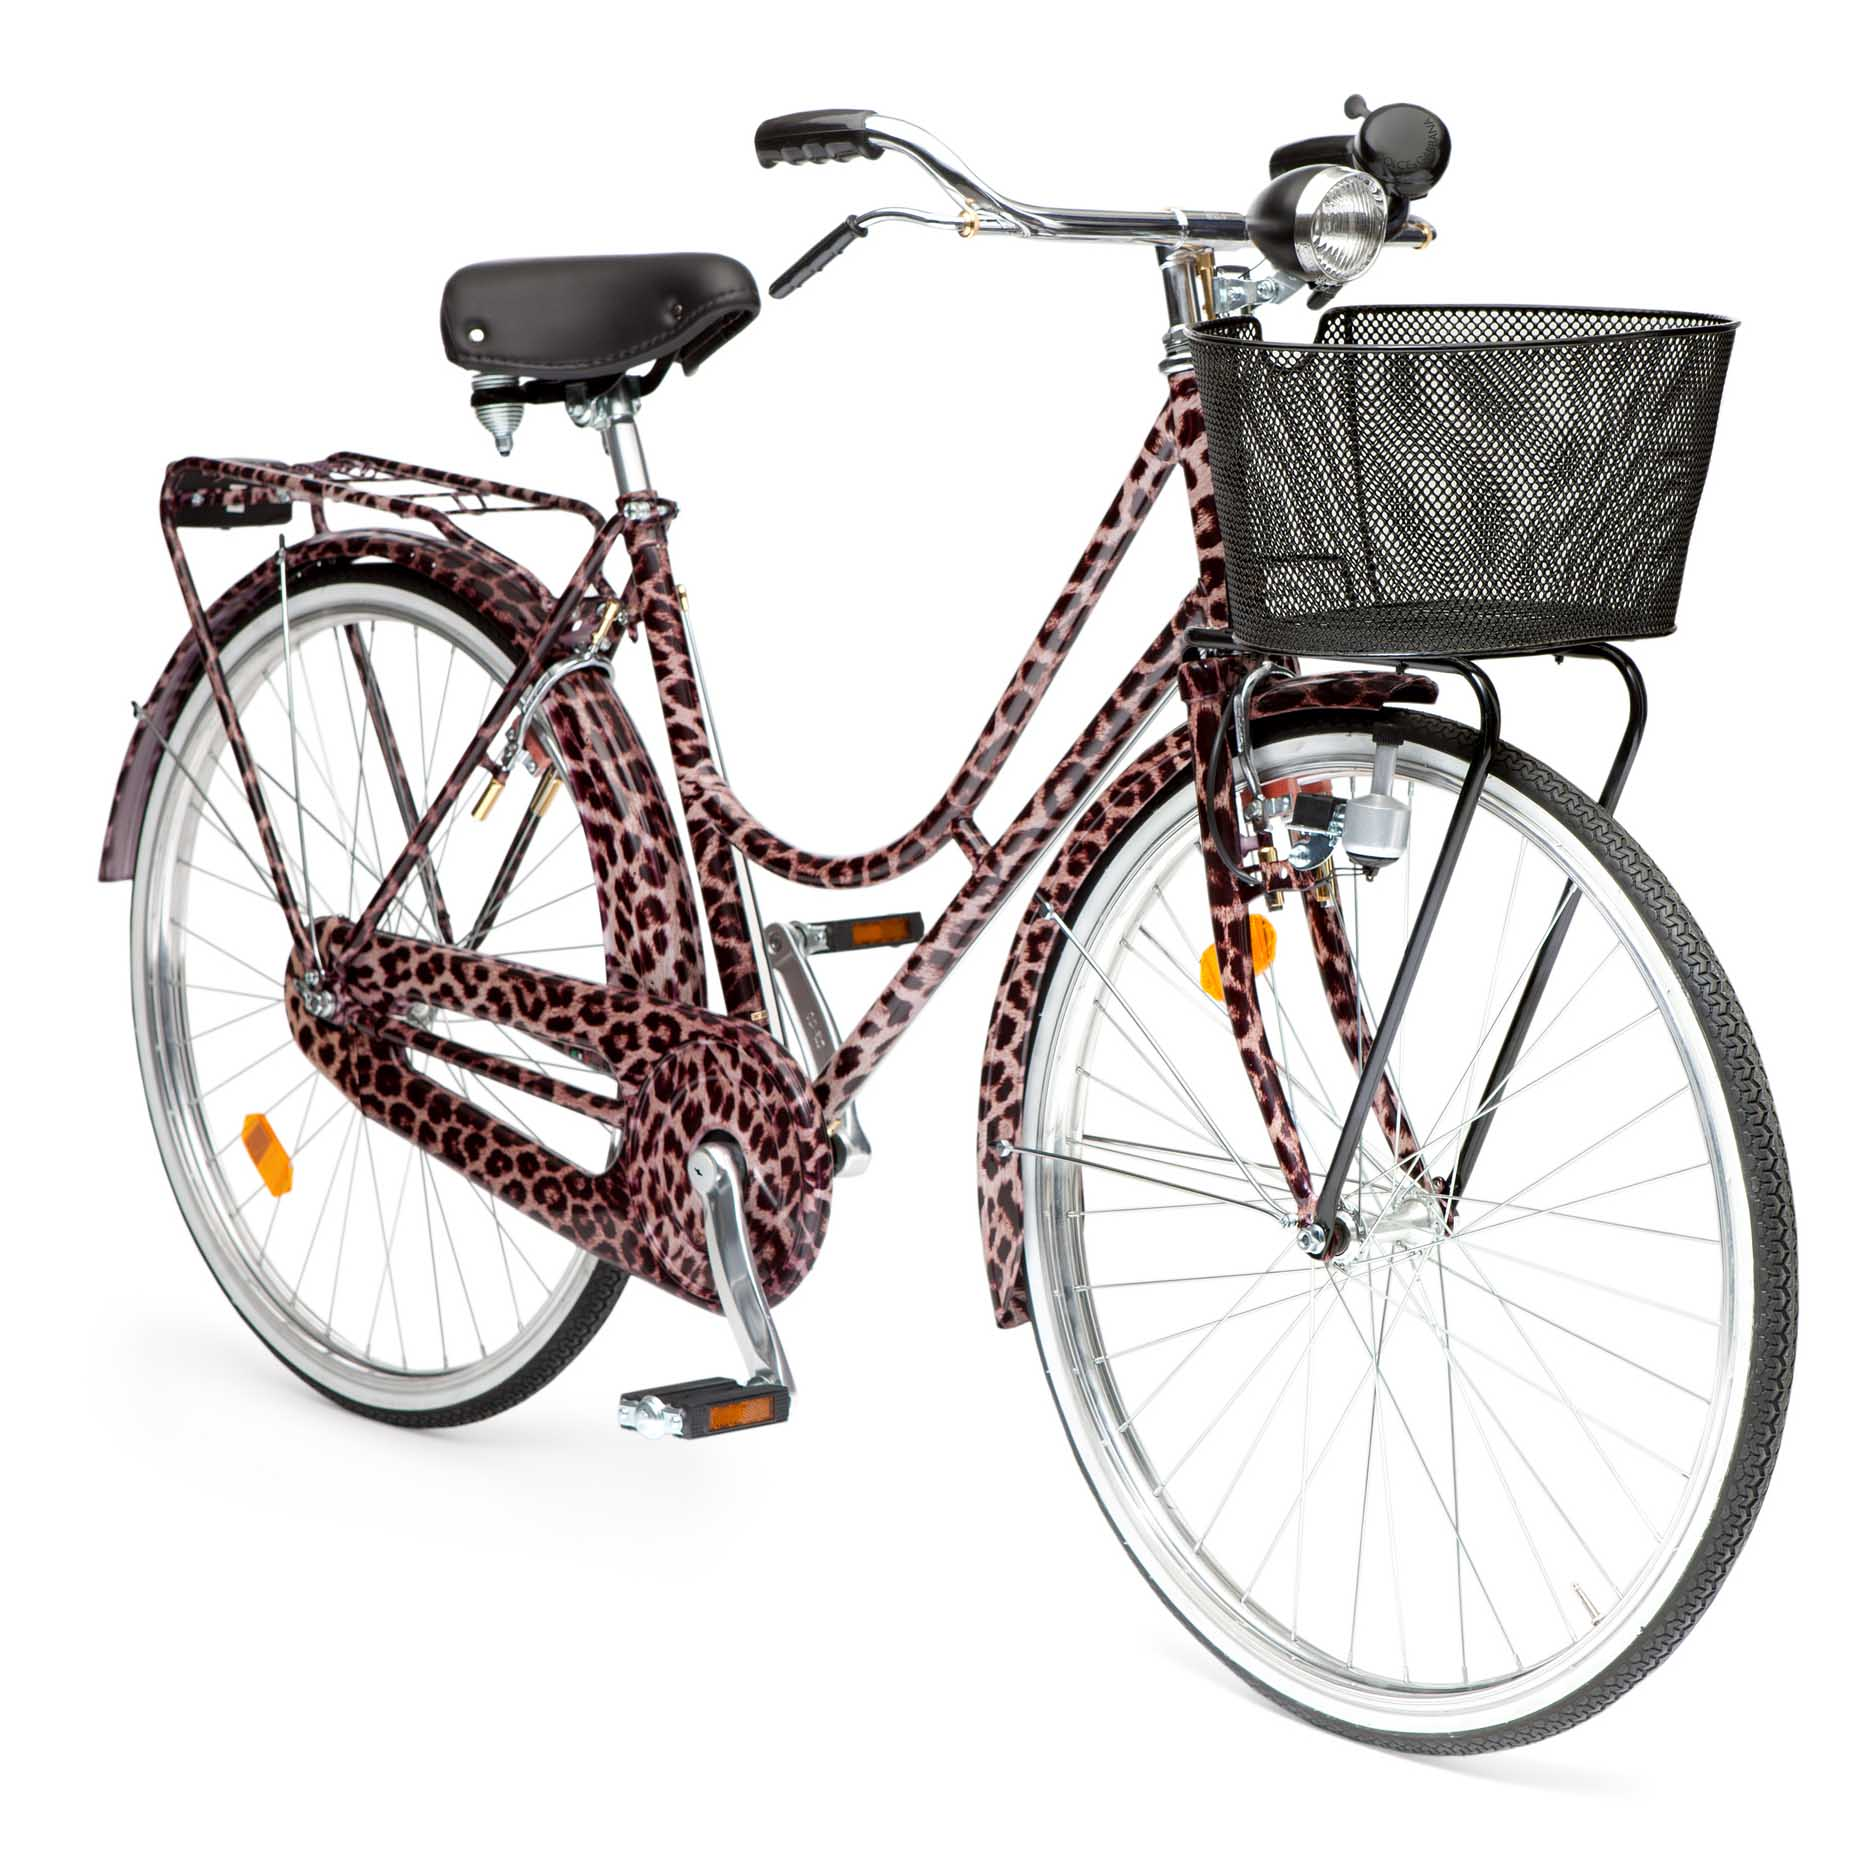 Dolce & Gabbana Bicycle main